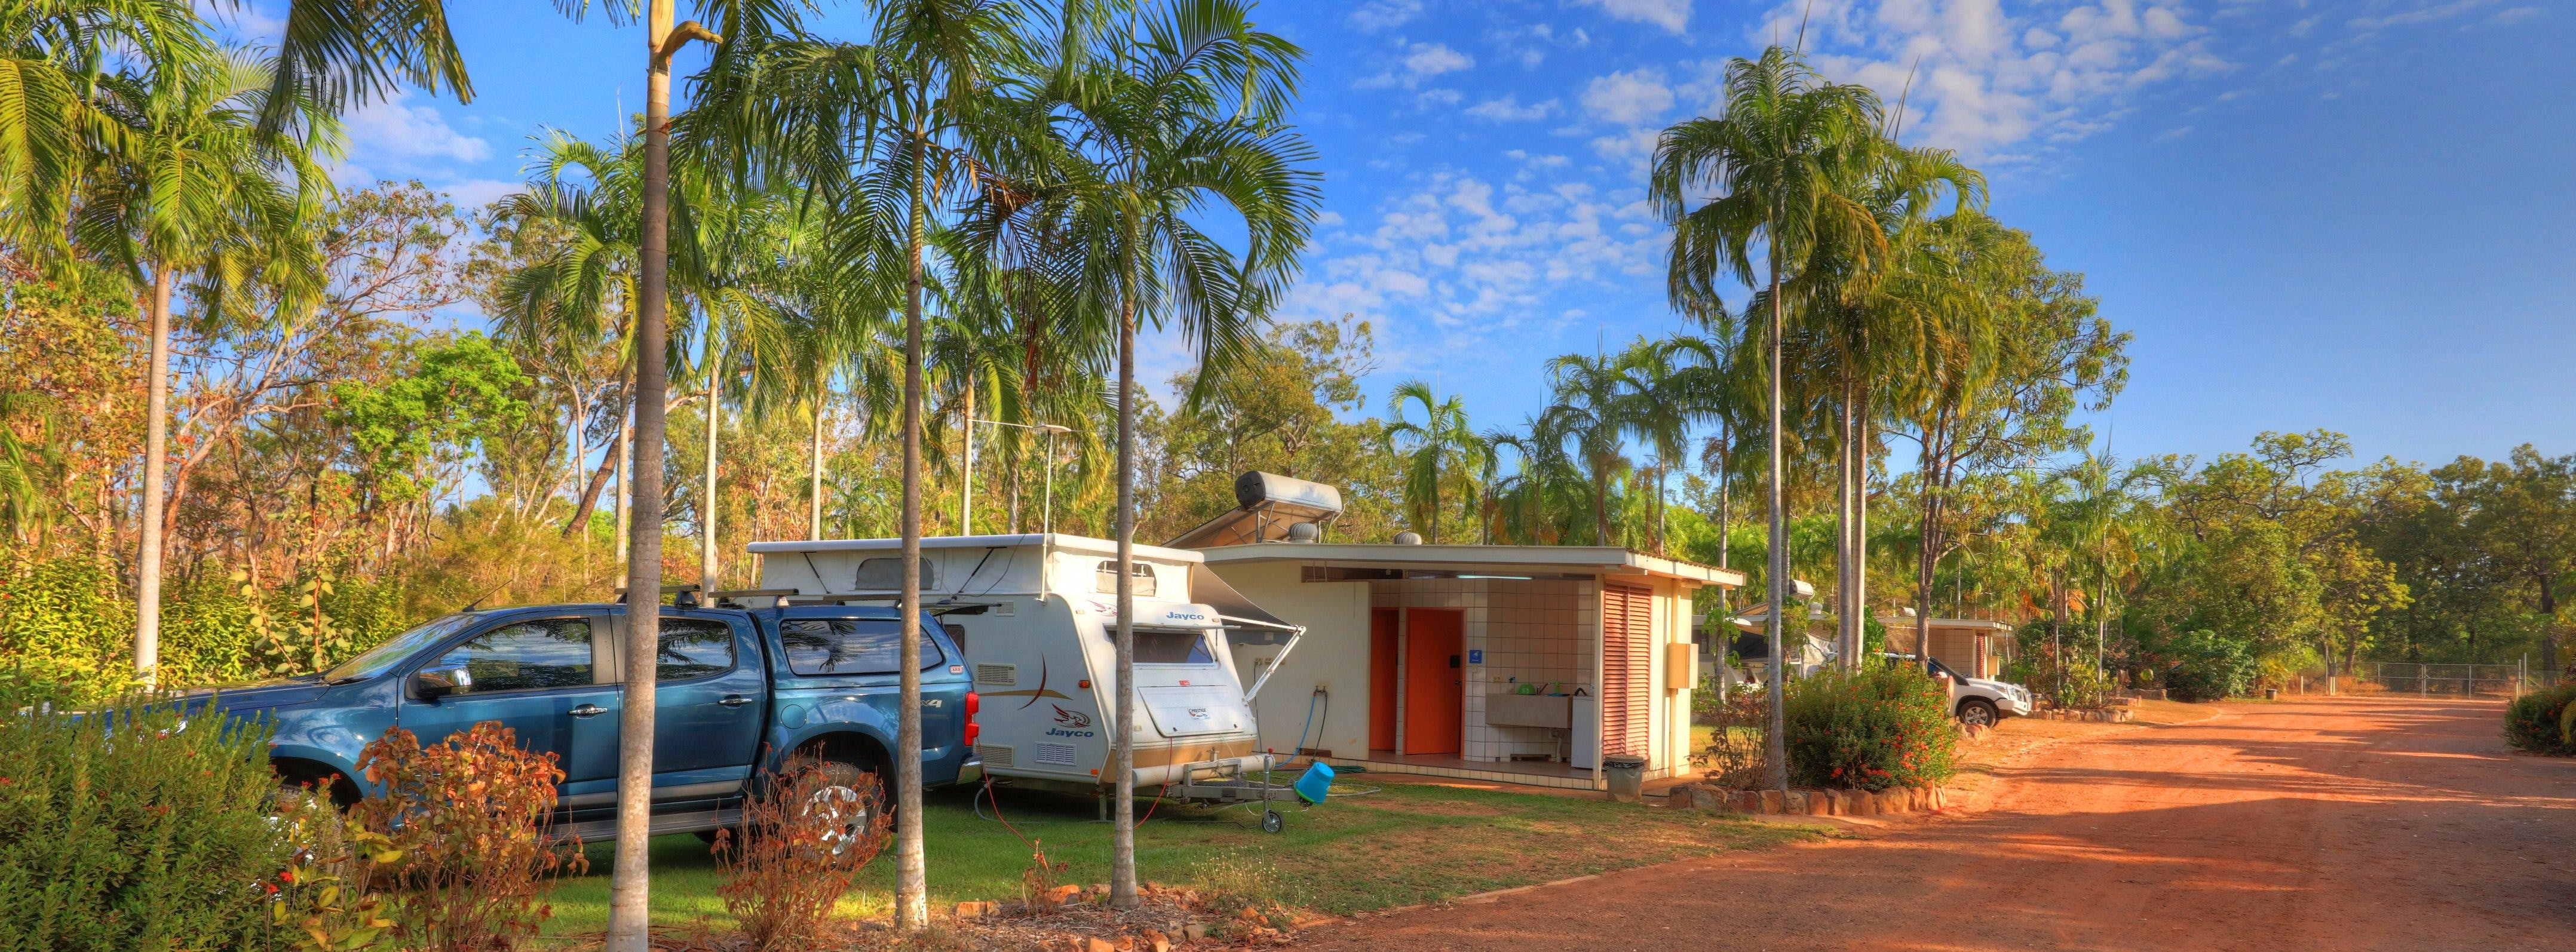 Batchelor Holiday Park - St Kilda Accommodation